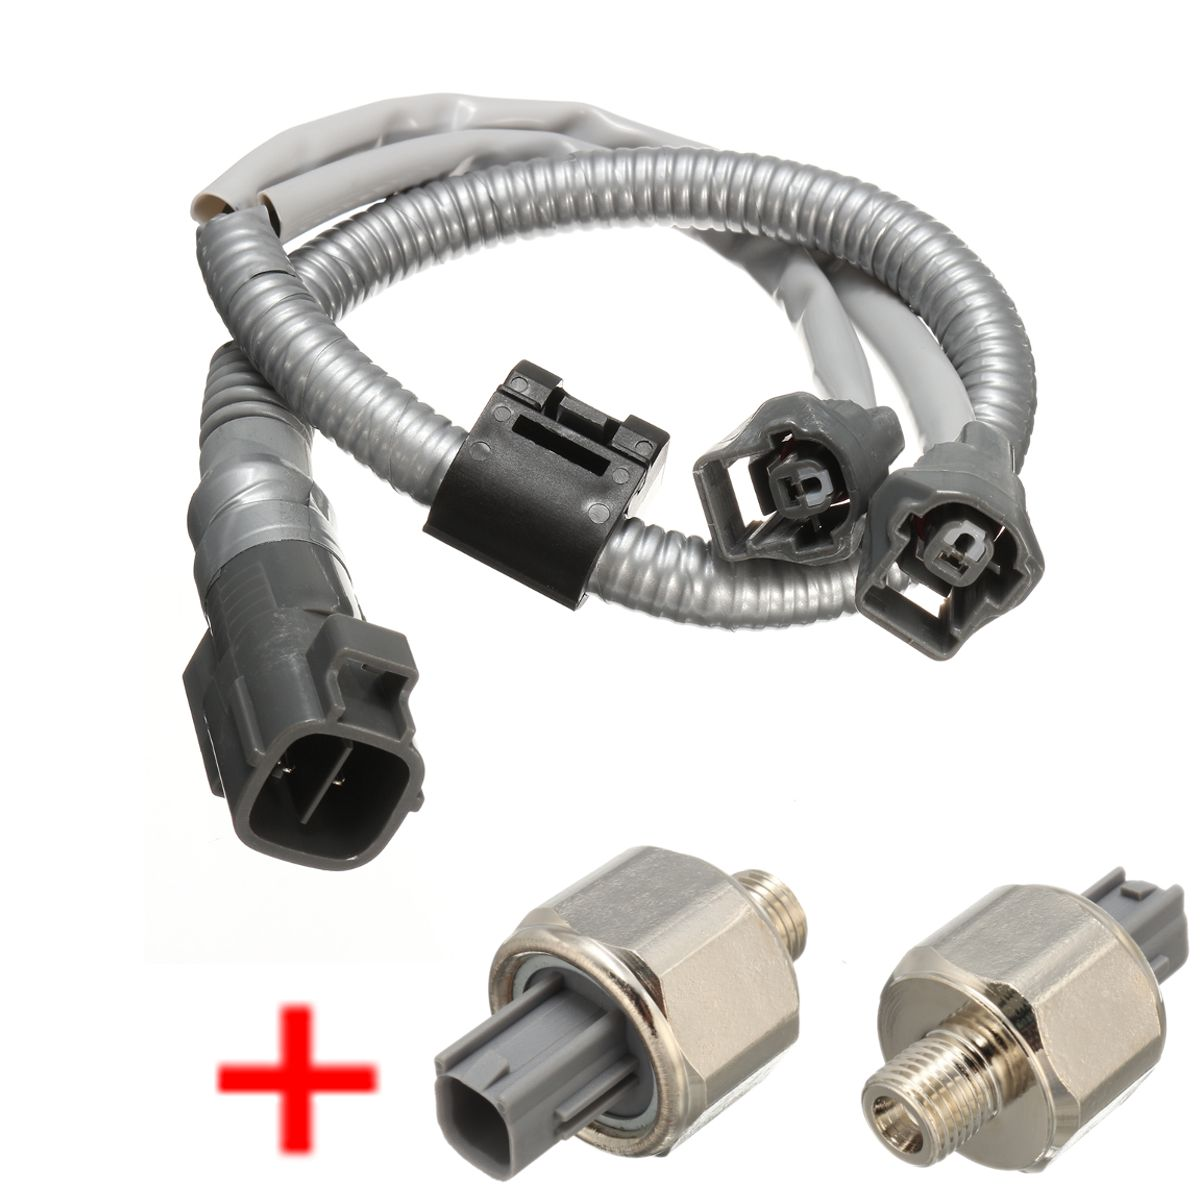 hight resolution of 2 knock sensor with wire harness for toyota camry avalon solara highlander es330 for lexus rx300 8221933030 82219 07010 in detonation sensor from